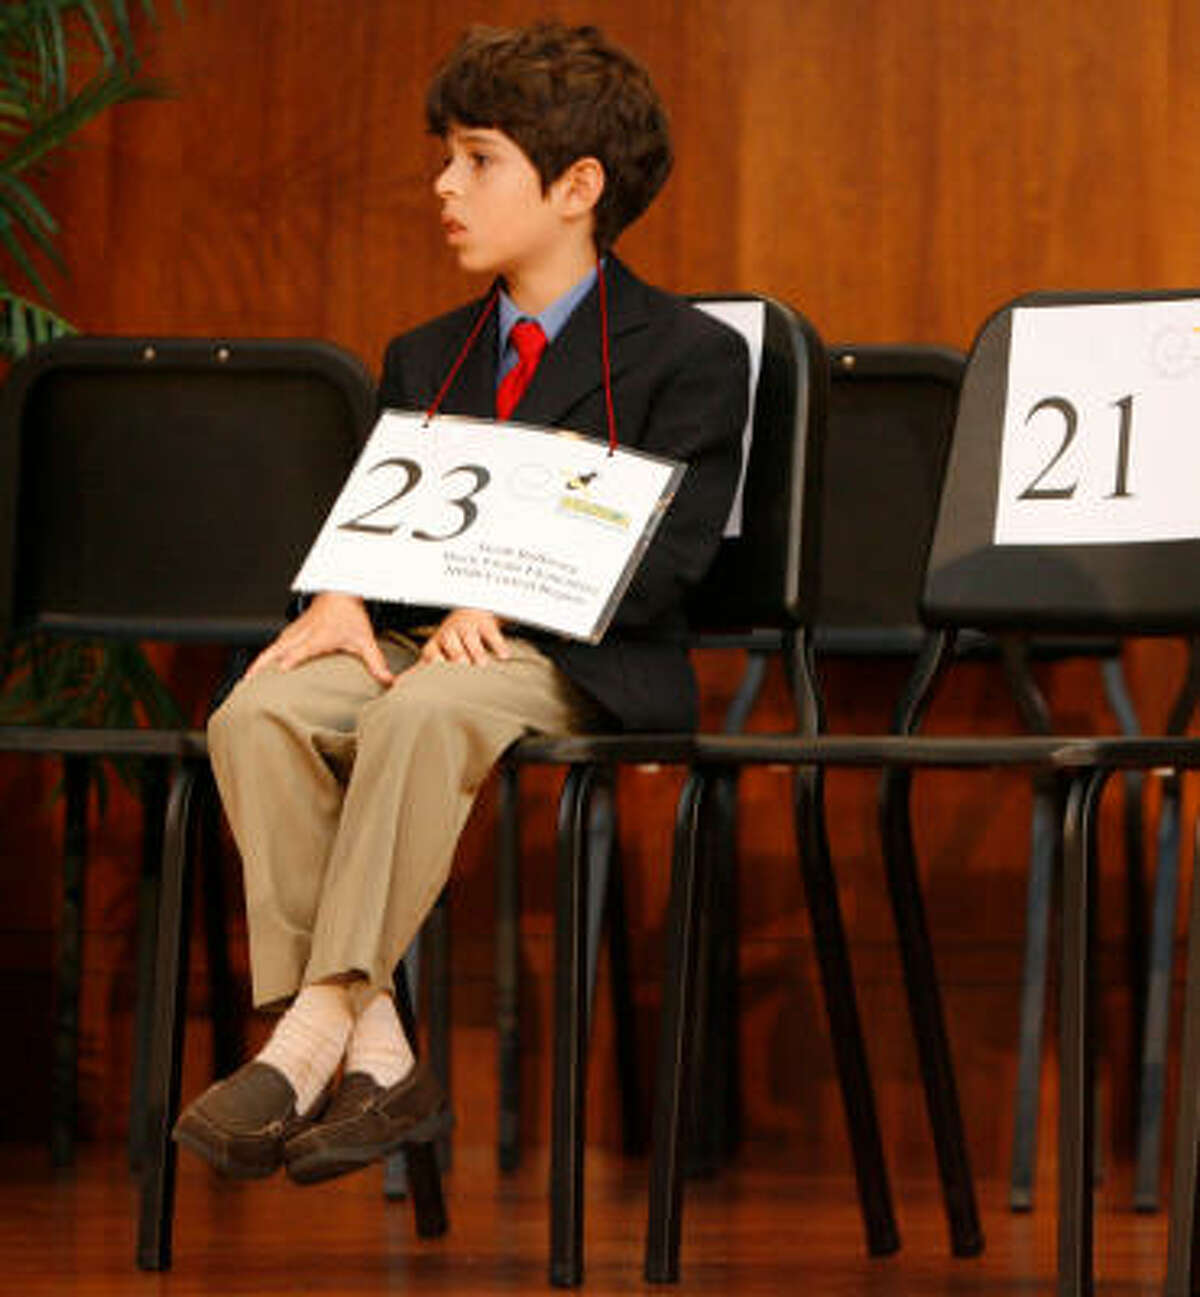 Jacob, shown trying to keep his knees from shaking during the bee, admitted he was nervous about the spelling contest.